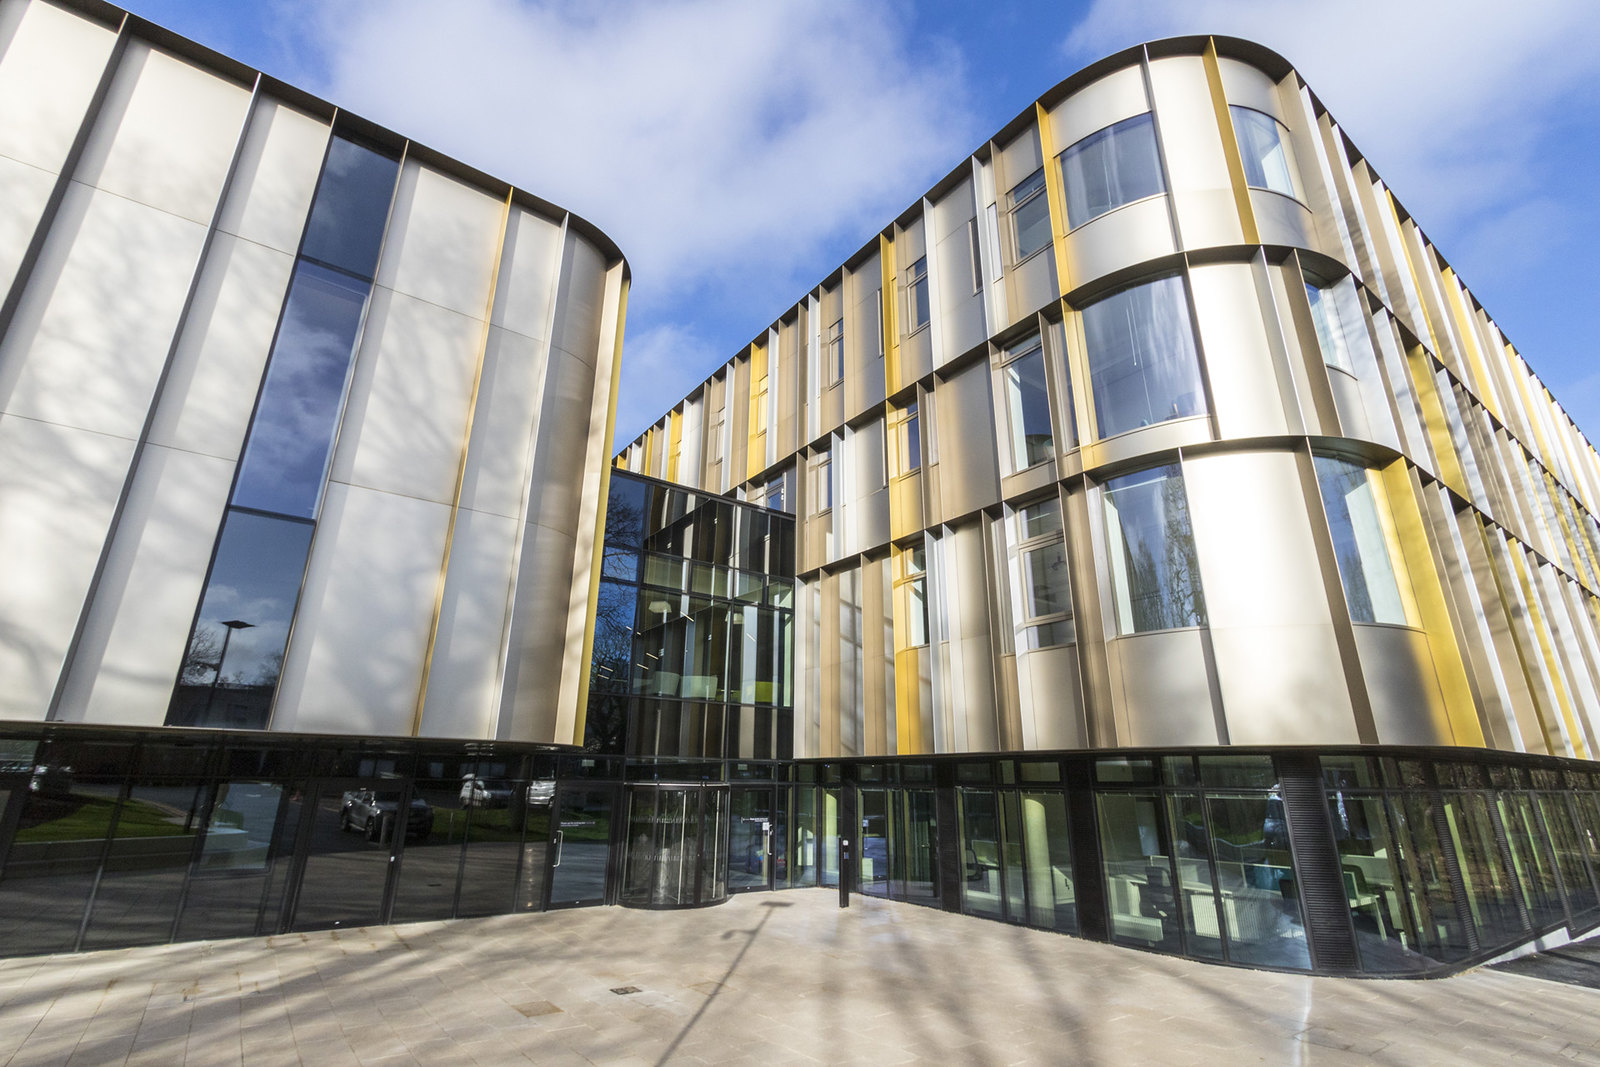 A photograph of the Sibson Building at the University of Kent